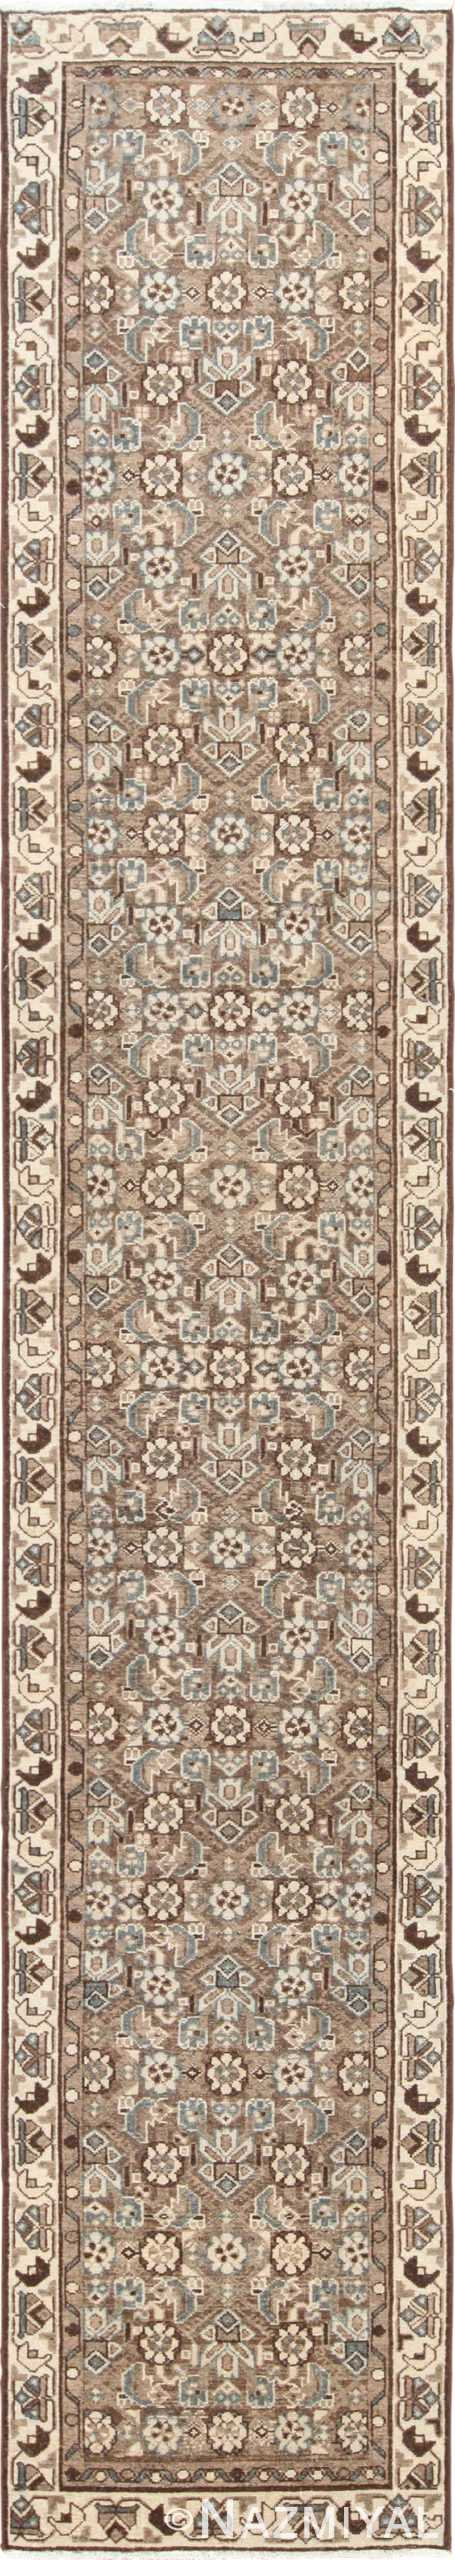 Decorative Earth Tone Antique Persian Malayer Runner Rug 49630 by Nazmiyal